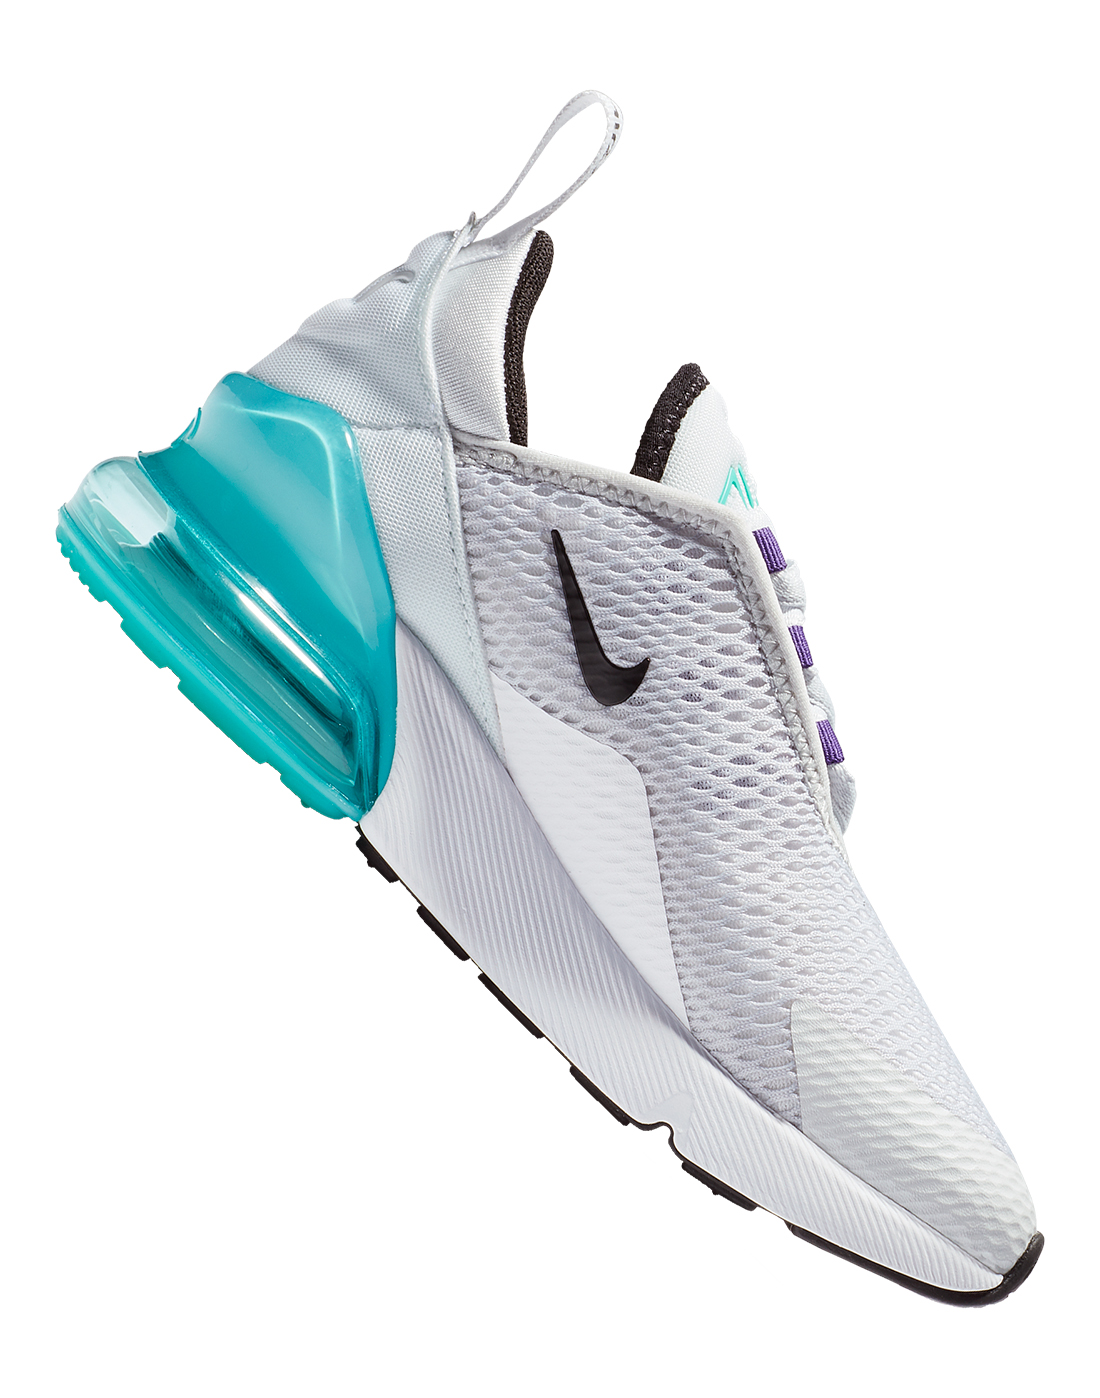 100% authentic ef1b7 10aec Younger Kids Air Max 270 ...